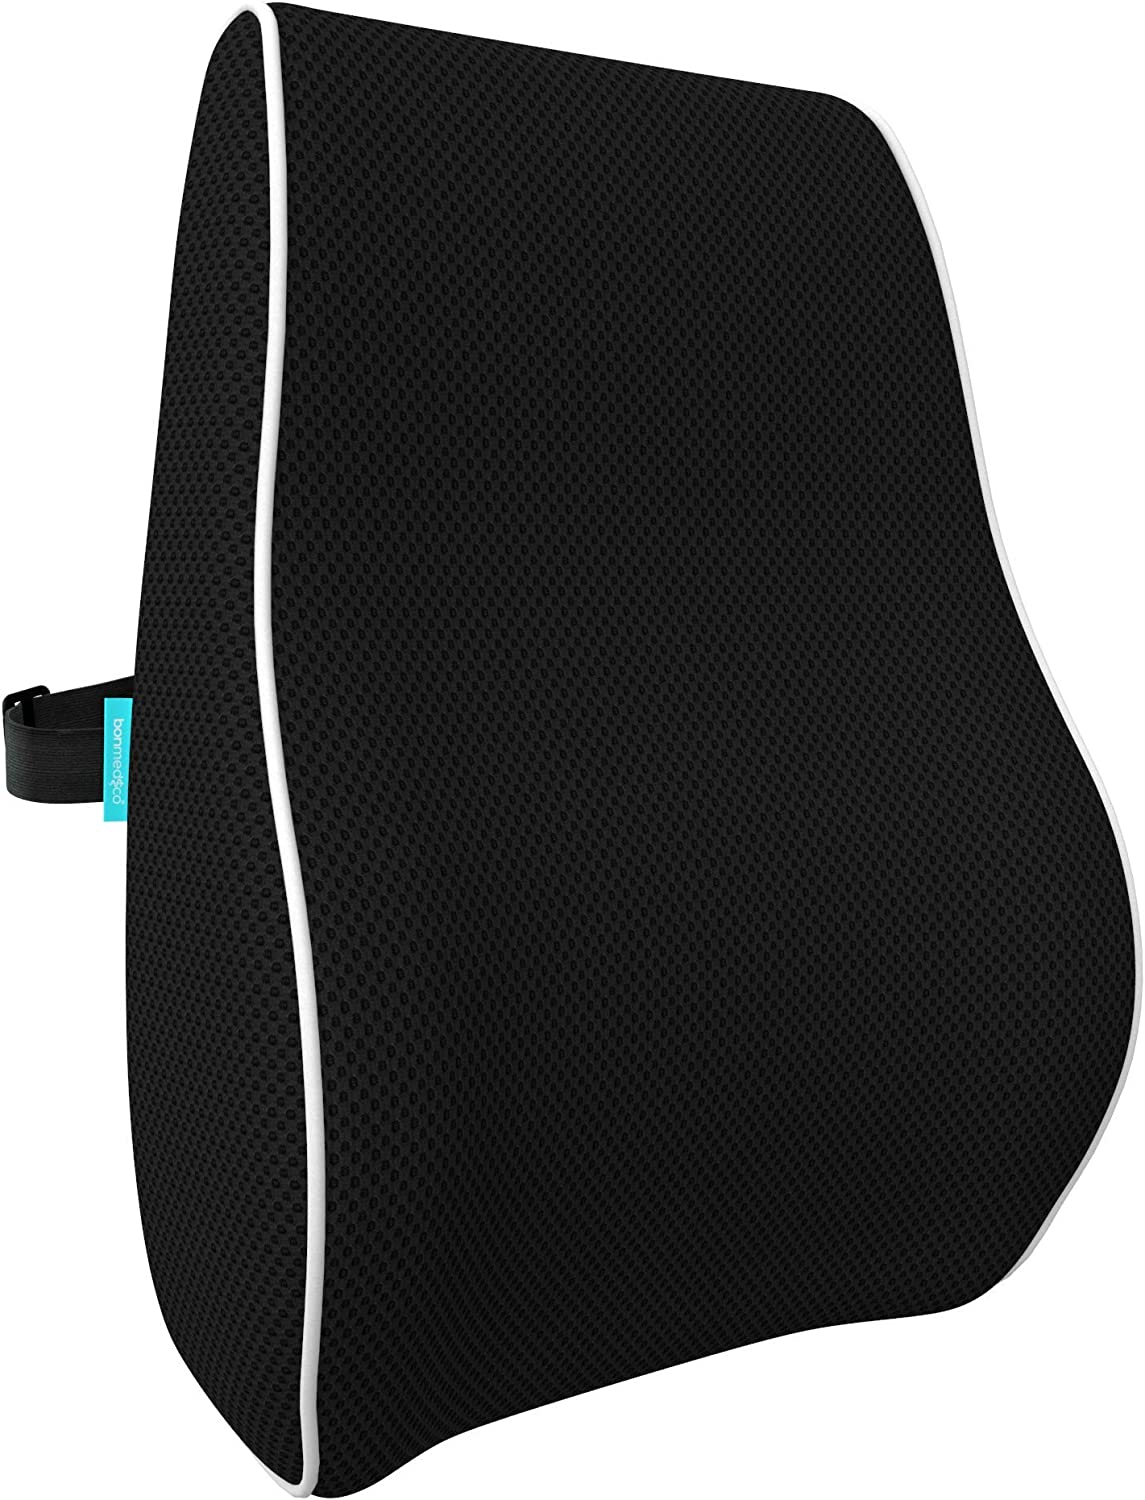 bonmedico Back Max 86% OFF Support Pillow - Car Desk and Office Chair Ranking TOP15 Seat